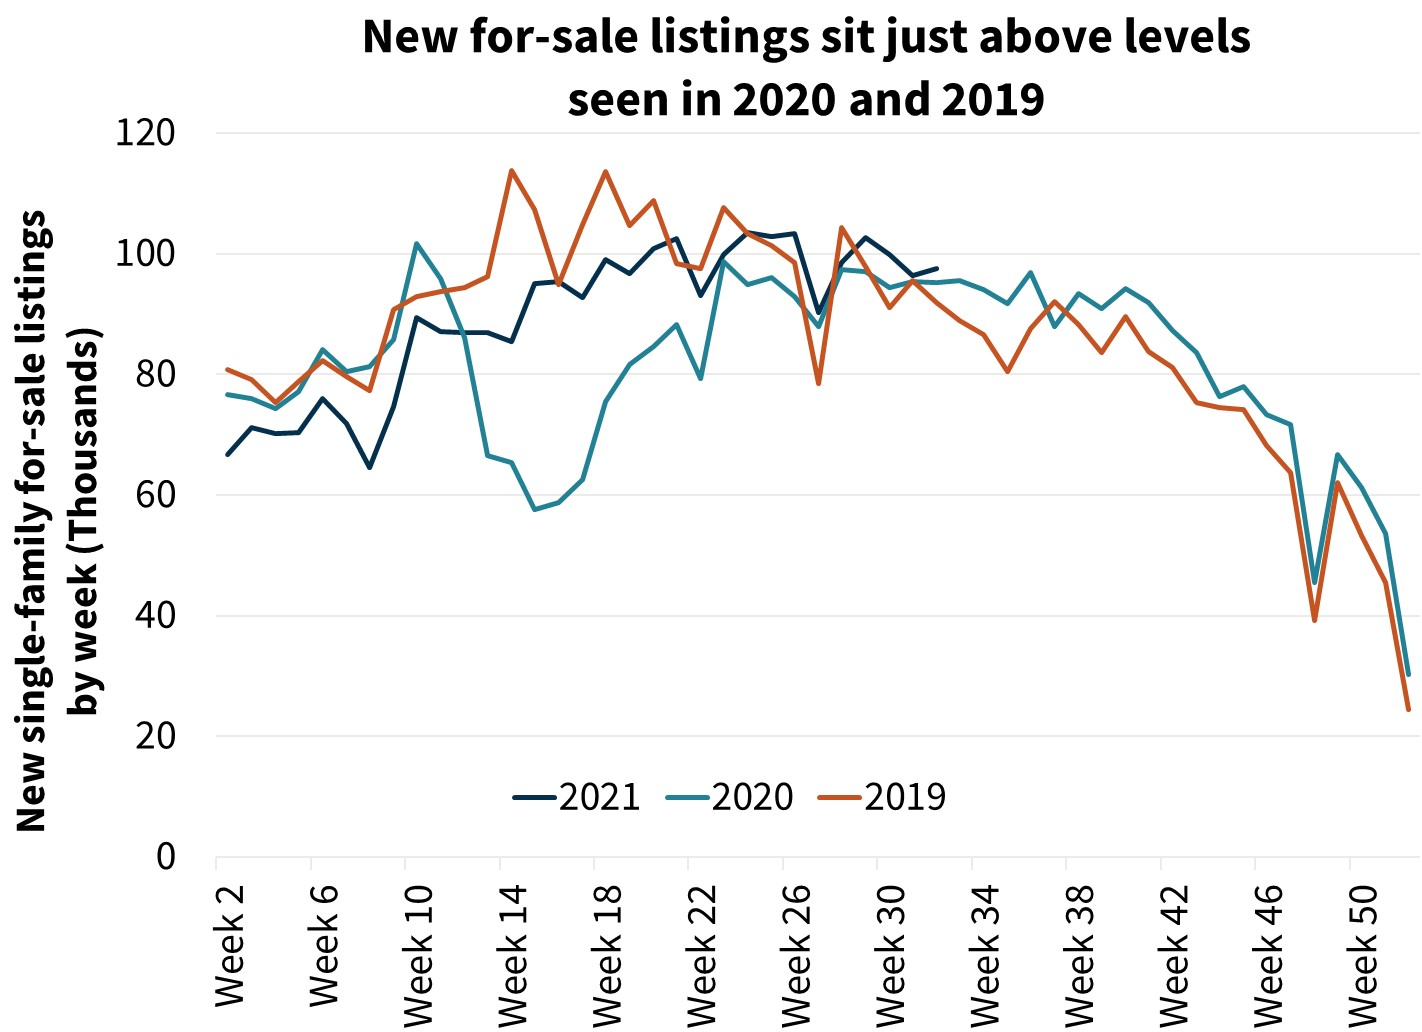 New for sale listings sit just above levels seen in 2020 and 2019